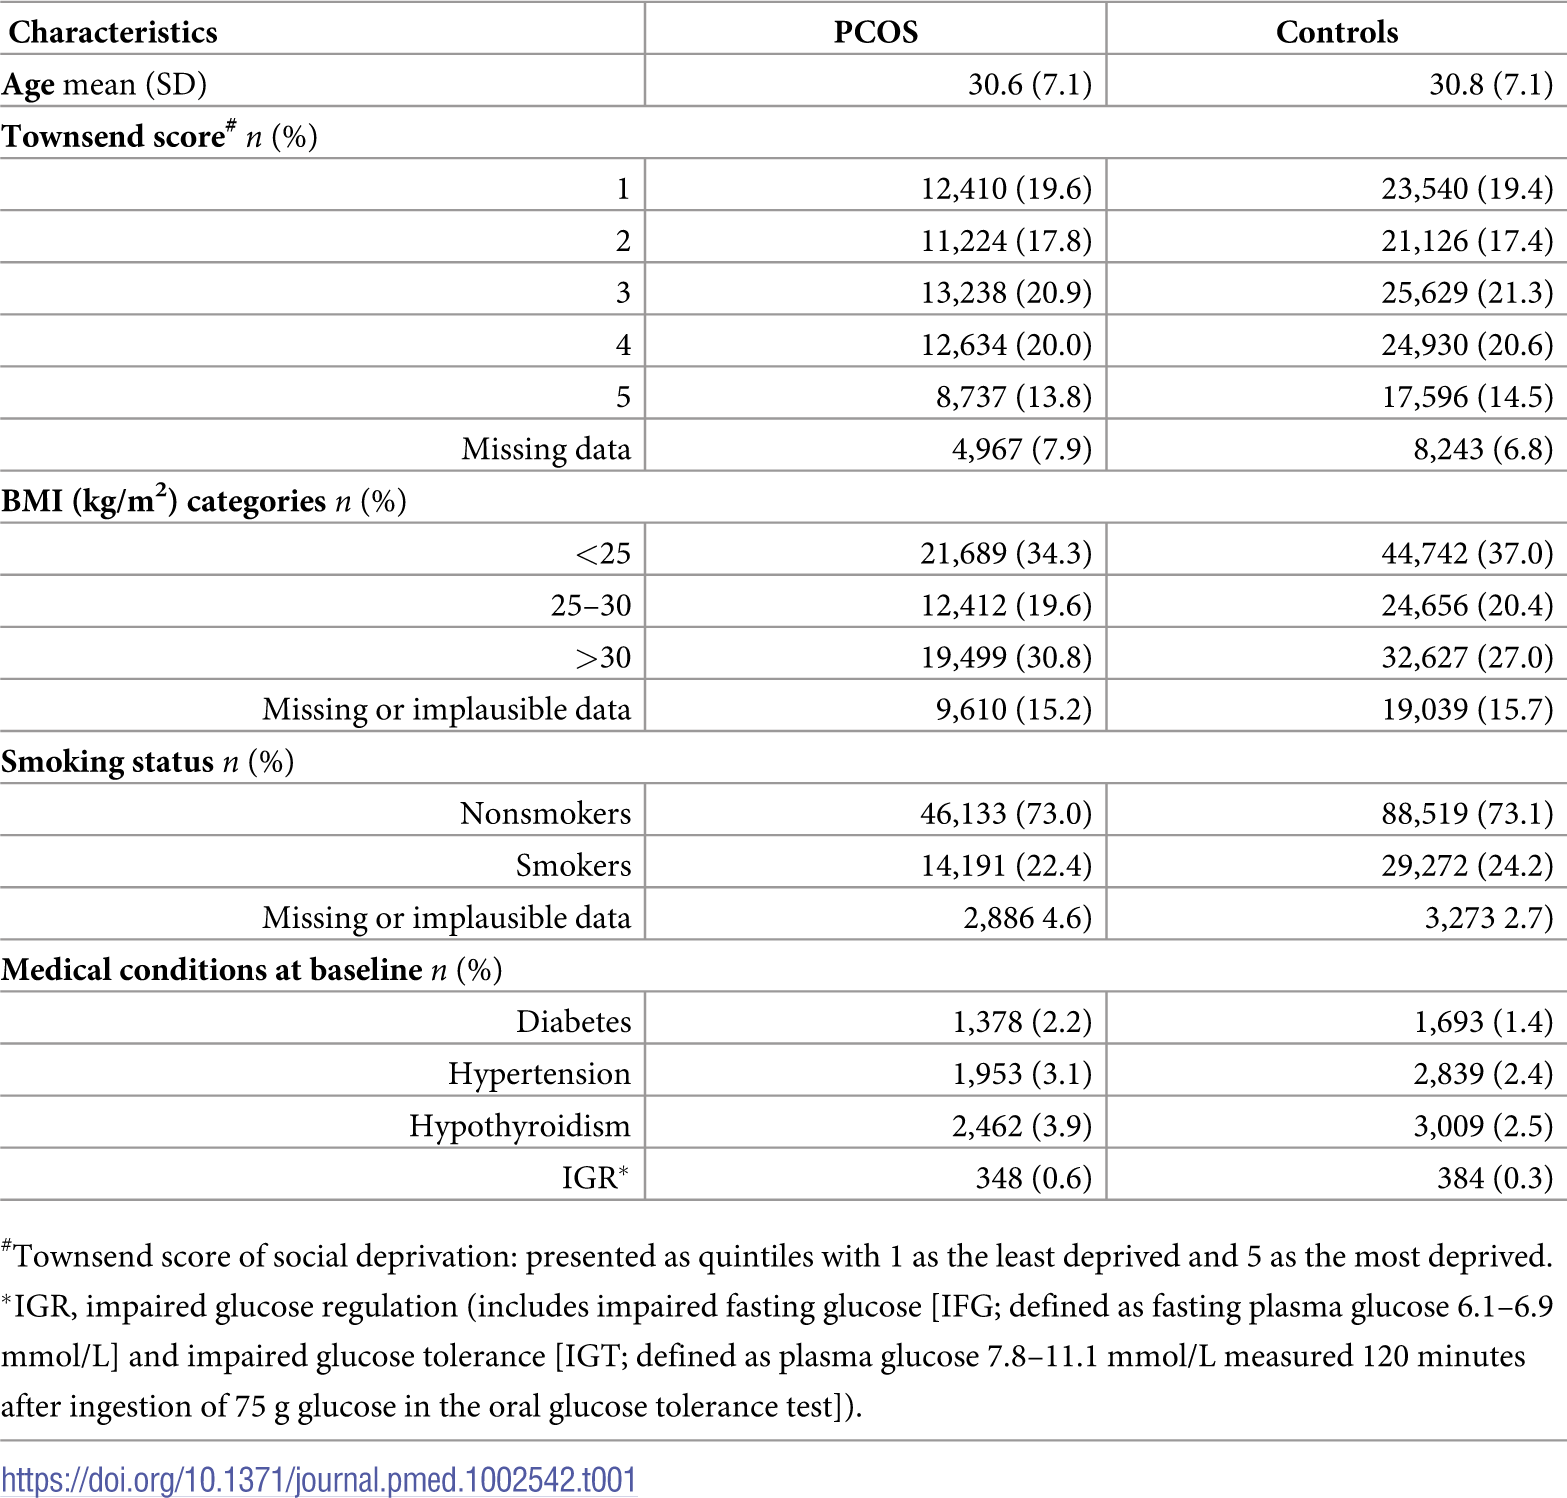 Baseline characteristics of the 63,210 women with polycystic ovary syndrome (PCOS) and 121,064 control women without PCOS.